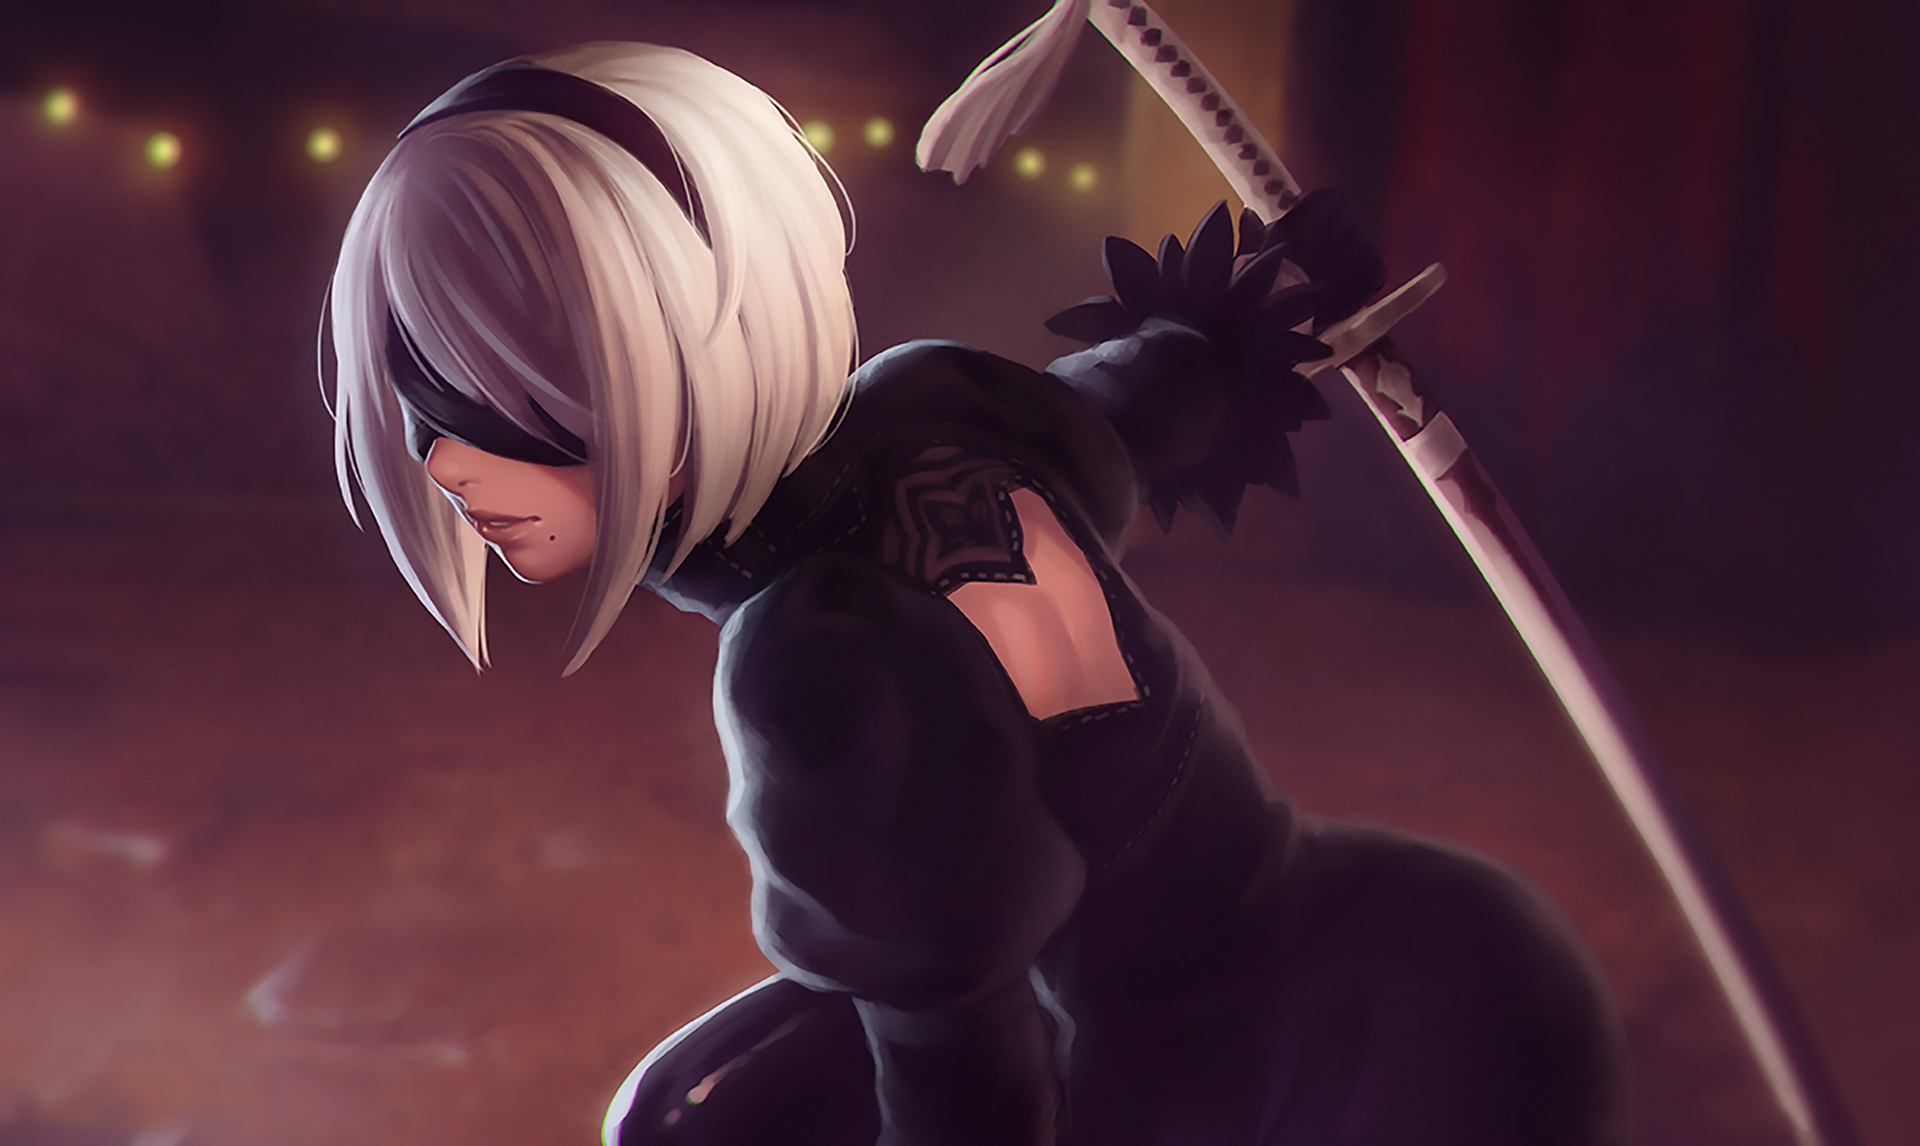 Nier Automata Fan Art Wallpaper 01 1920x1080: YoRHa NO 2 Type B Nier Automata Artwork, HD Games, 4k